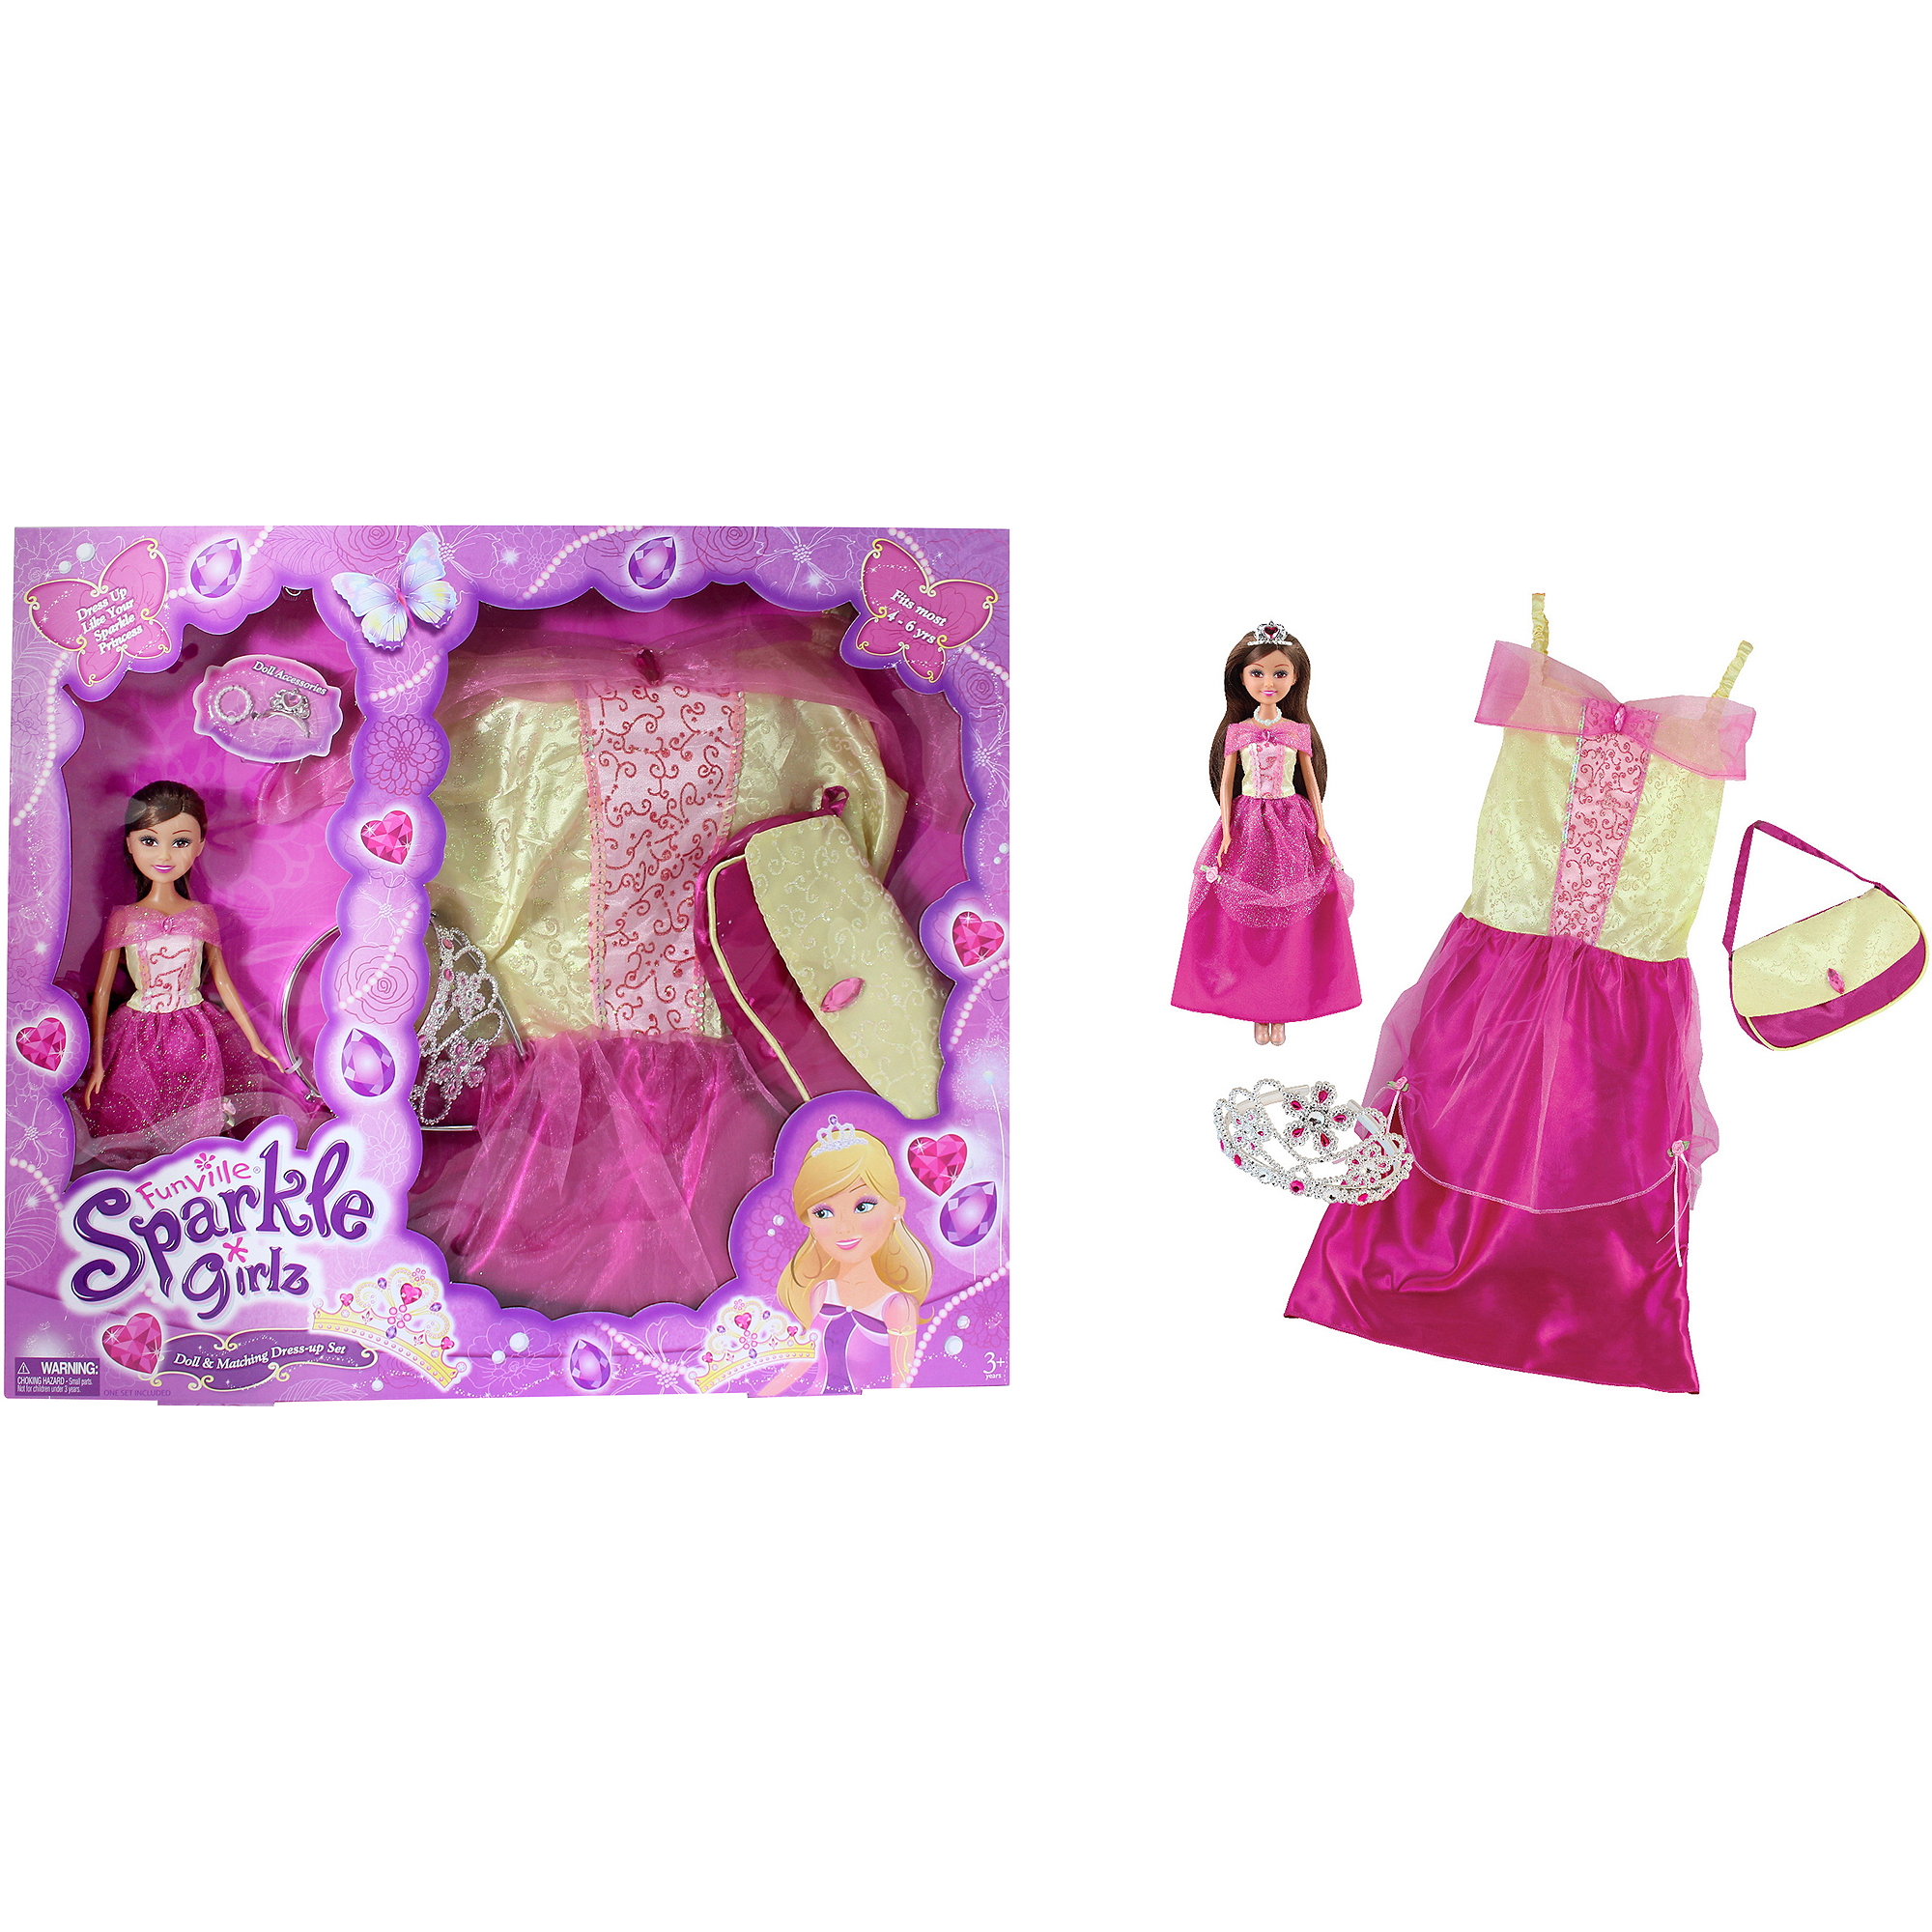 Funville Sparkle Girlz Doll with Dress Up, Caucasian, Princess